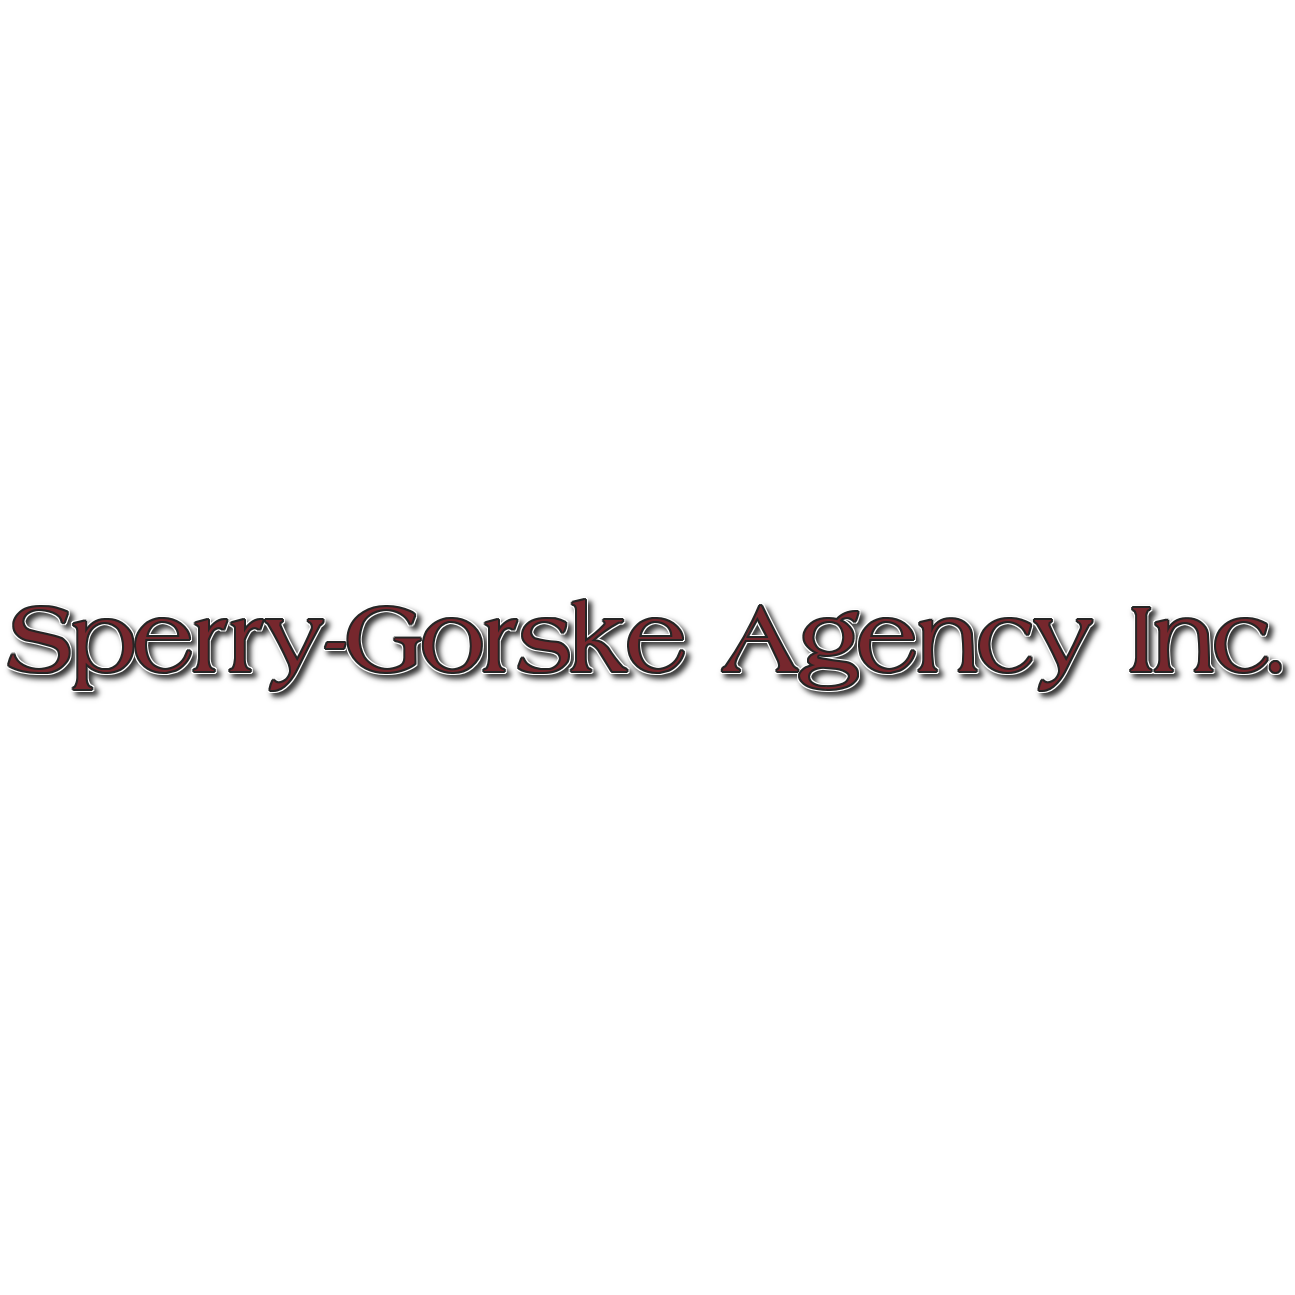 Sperry-Gorske Agency Inc - Oberlin, OH - Insurance Agents